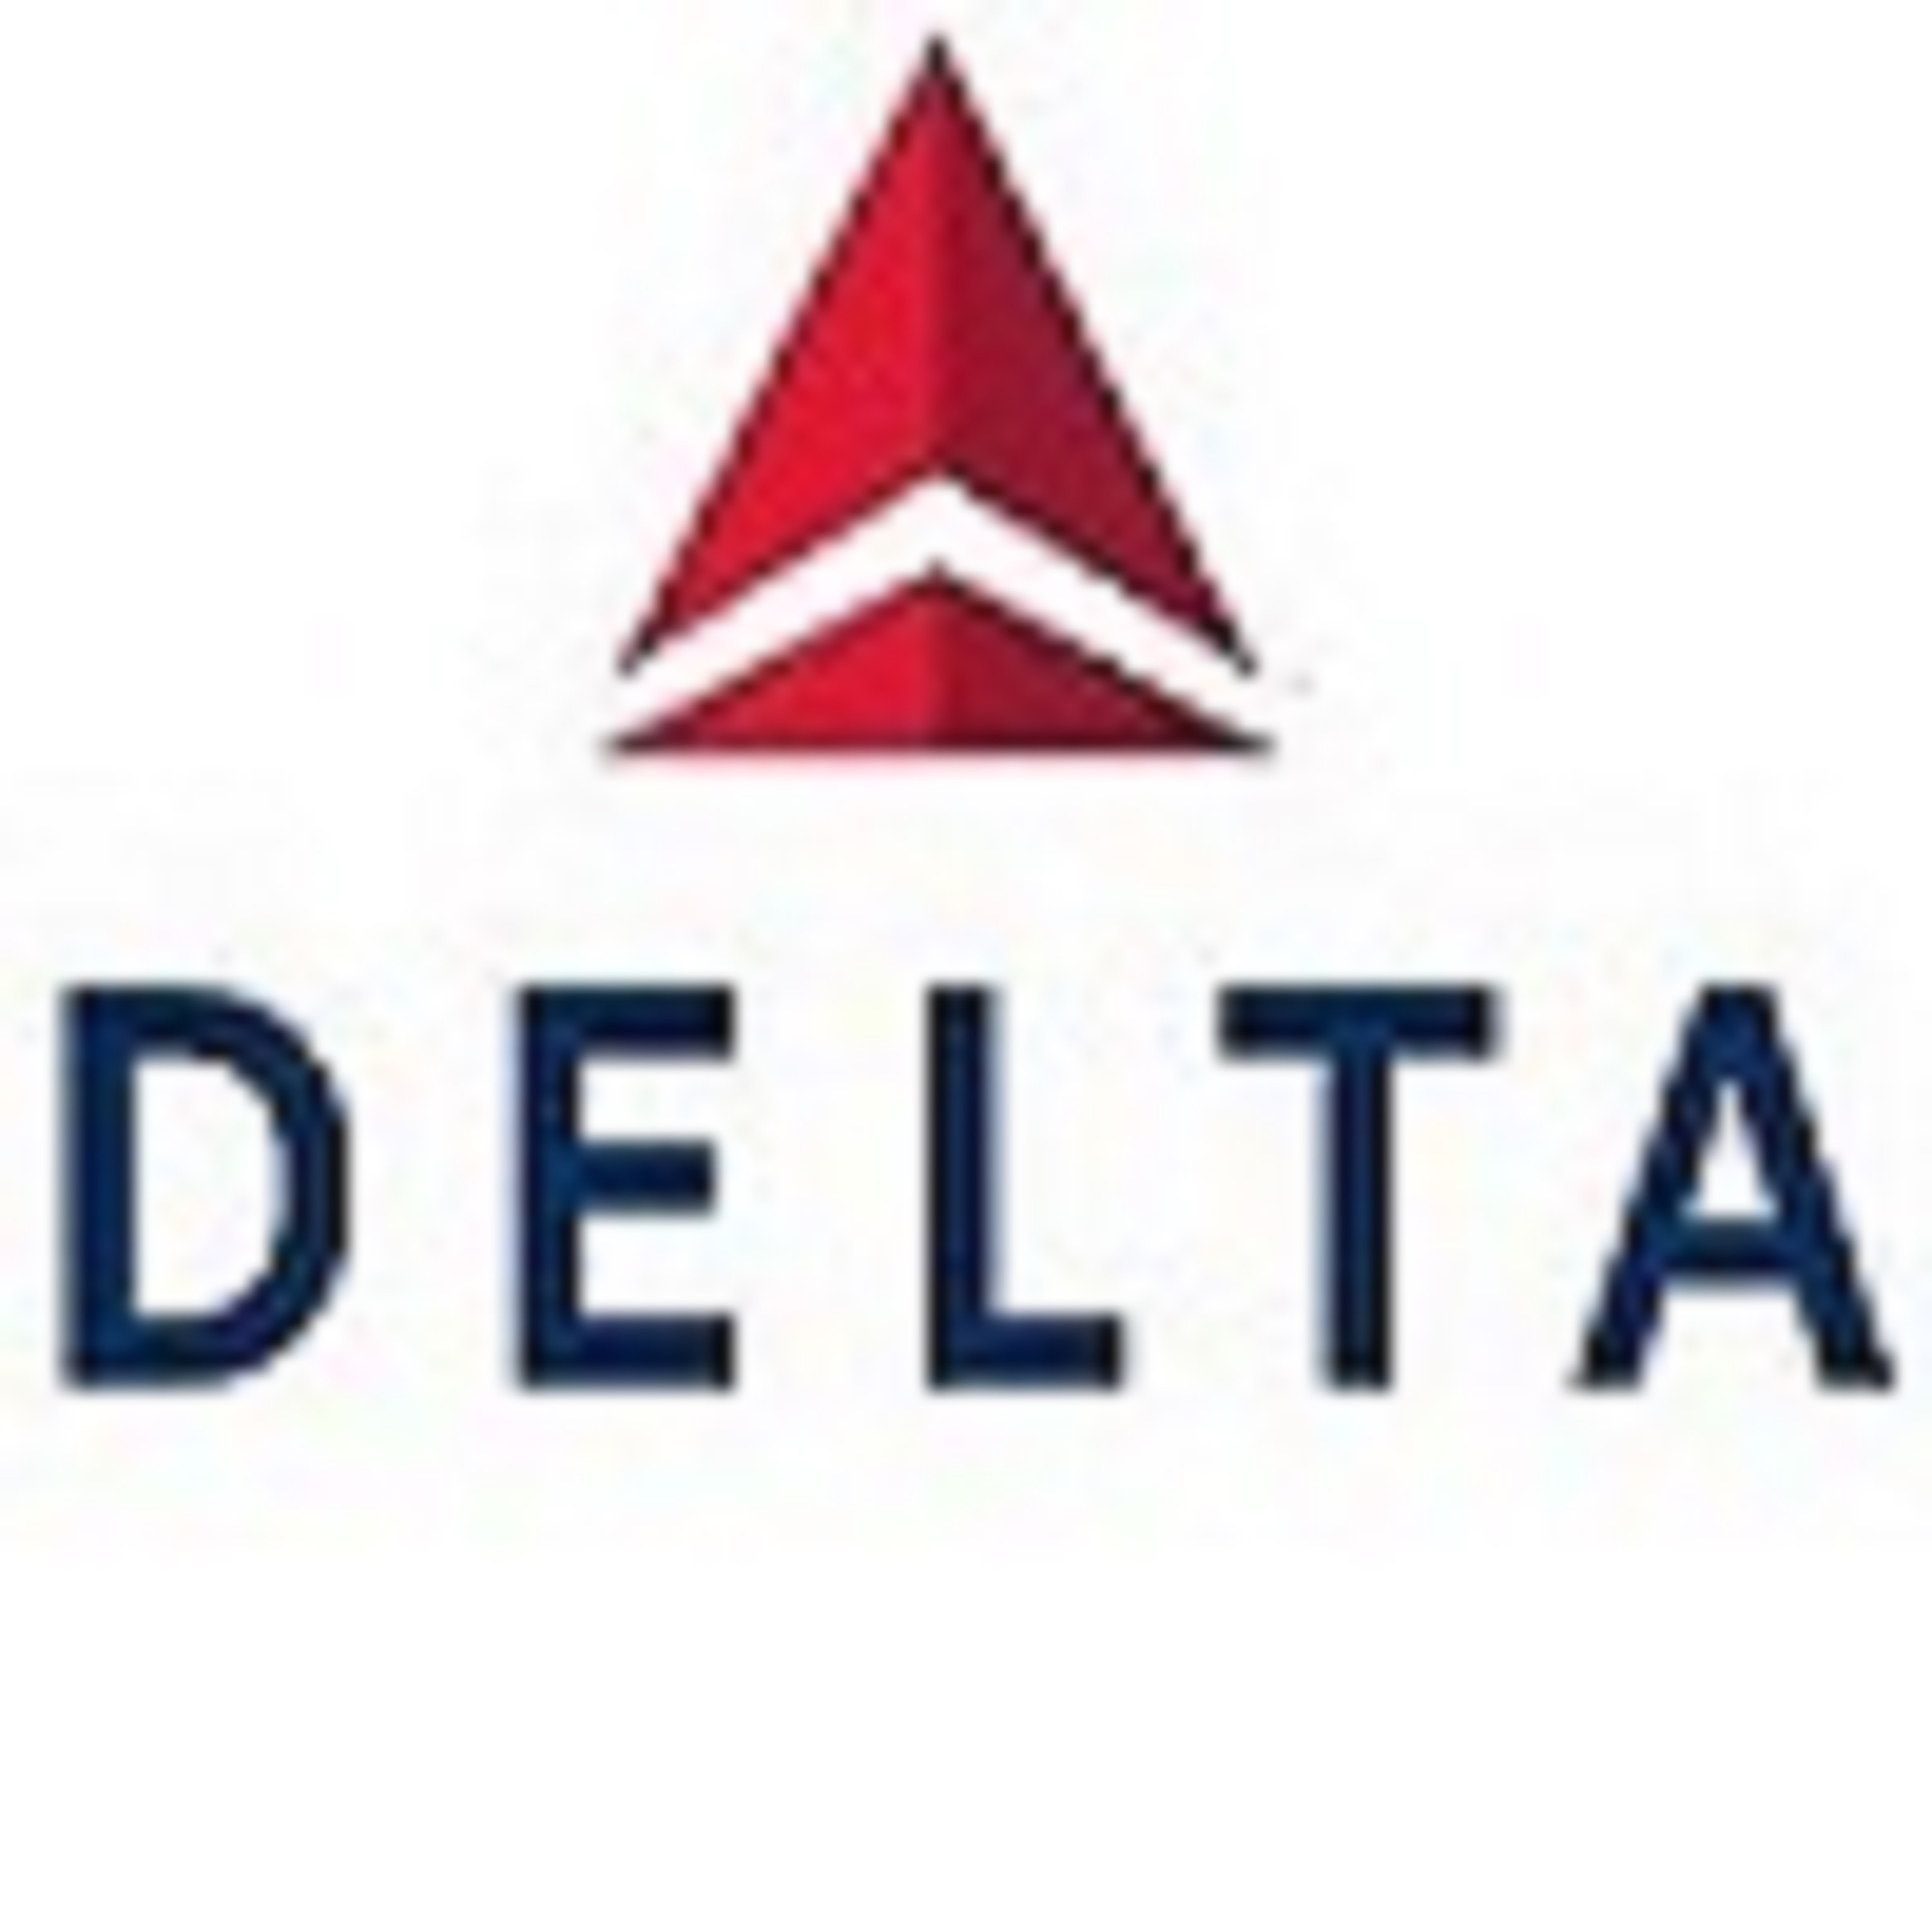 Delta Airlines(800) 348-5370 Cheap Flights Airlines Tickets - Sky Fly Trips